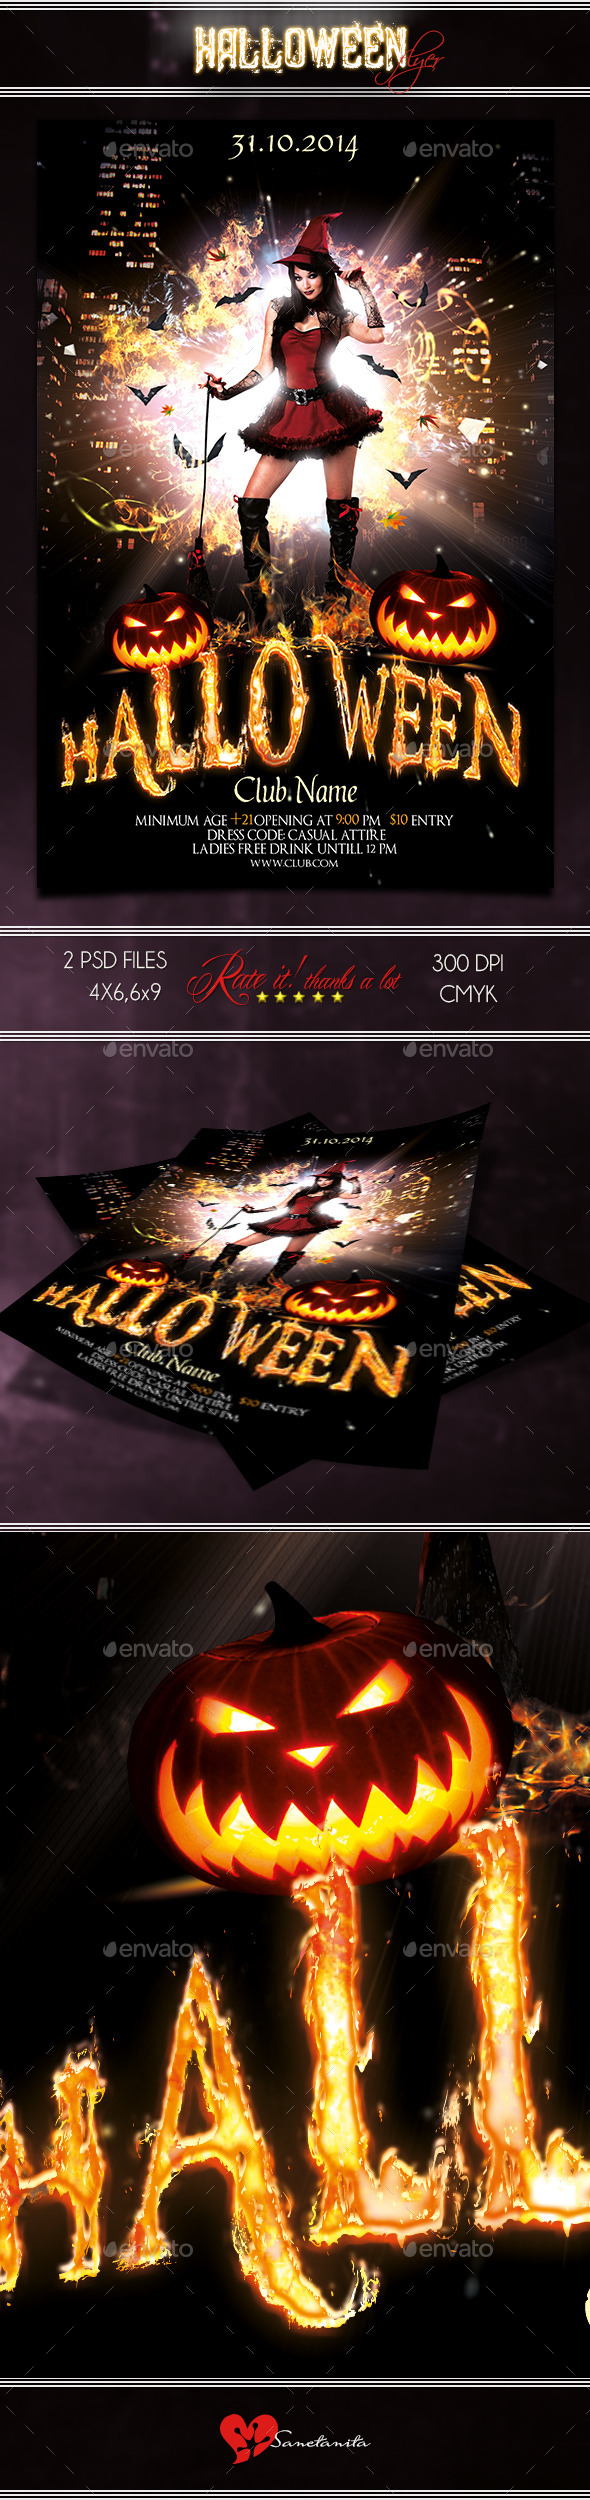 GraphicRiver Halloween Flyer 3 8853462